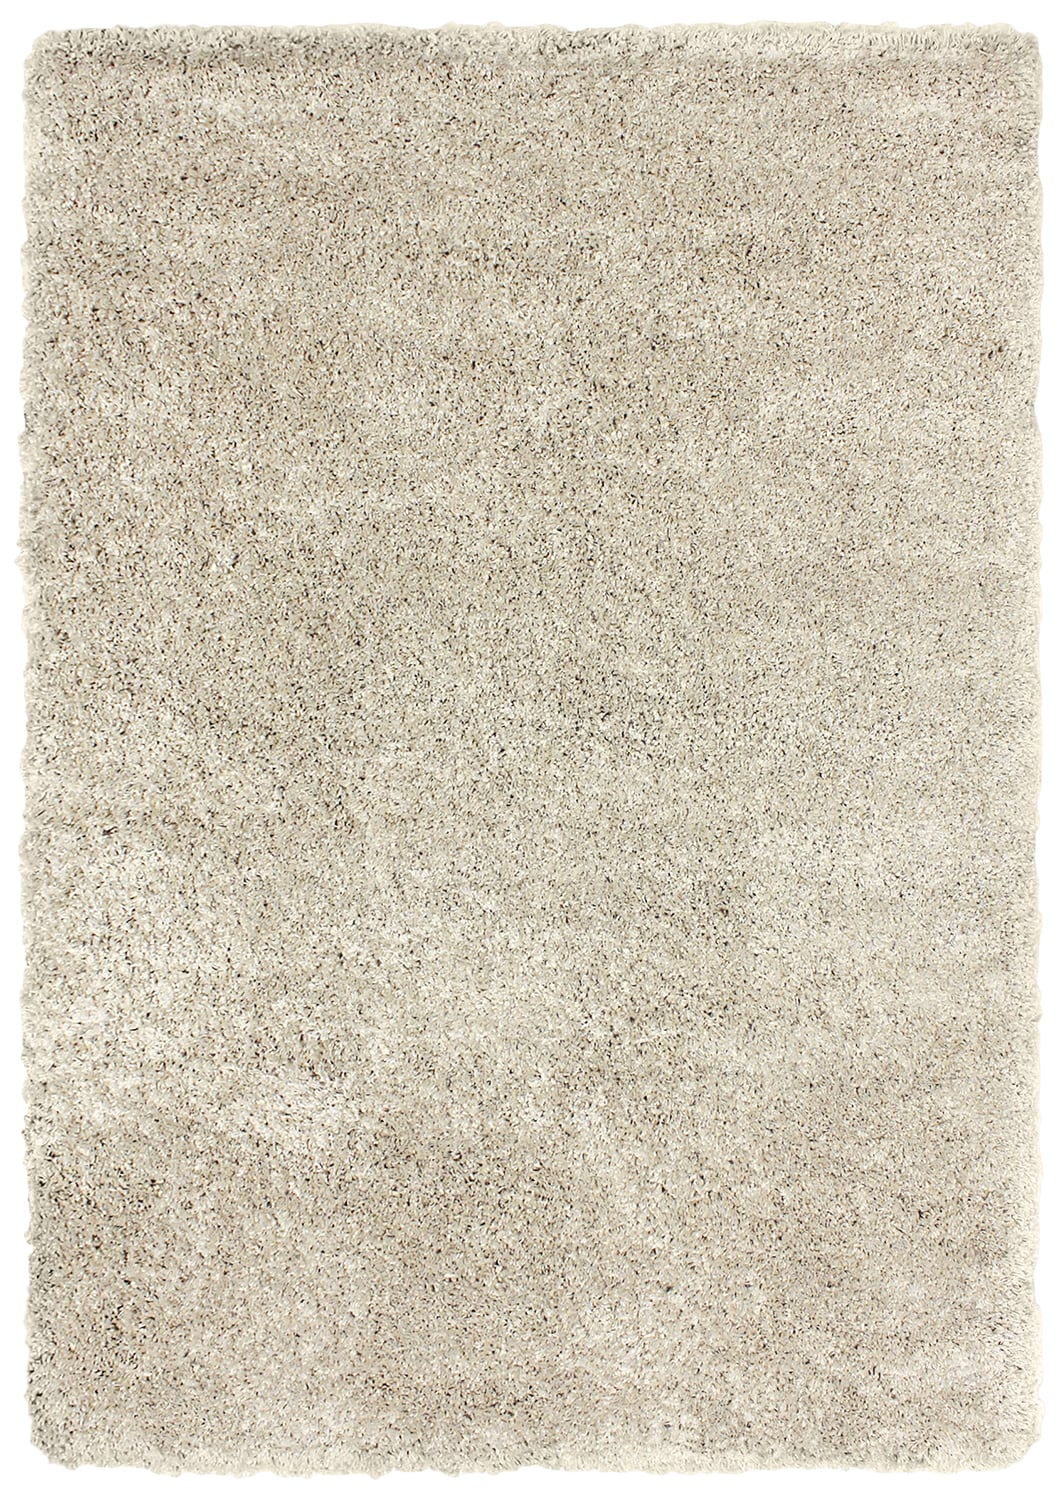 Rugs - Loft Linen-Coloured Shag Area Rug – 7' x 10'